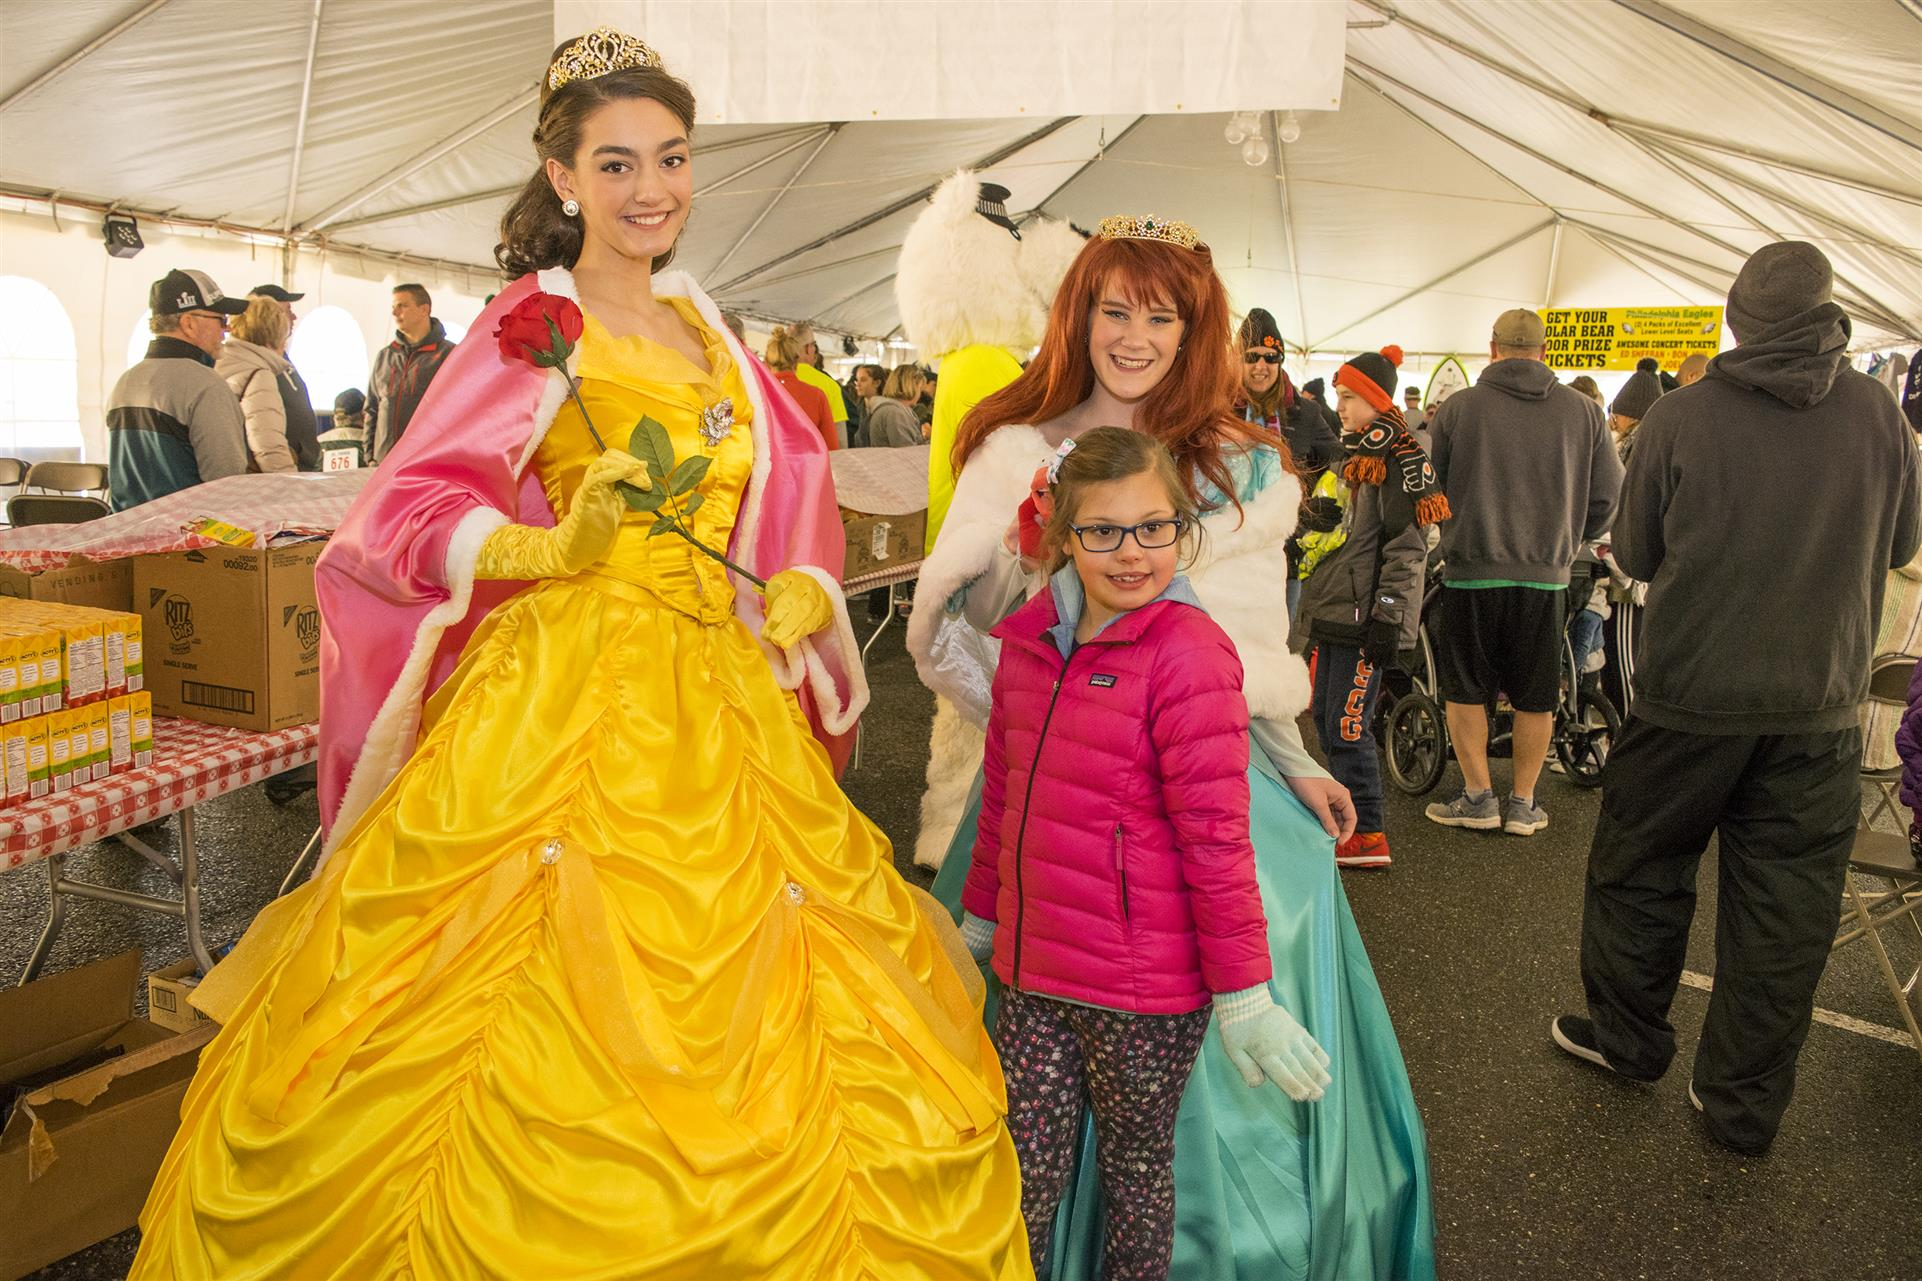 someone dressed up as belle from beauty and the beast with a kid